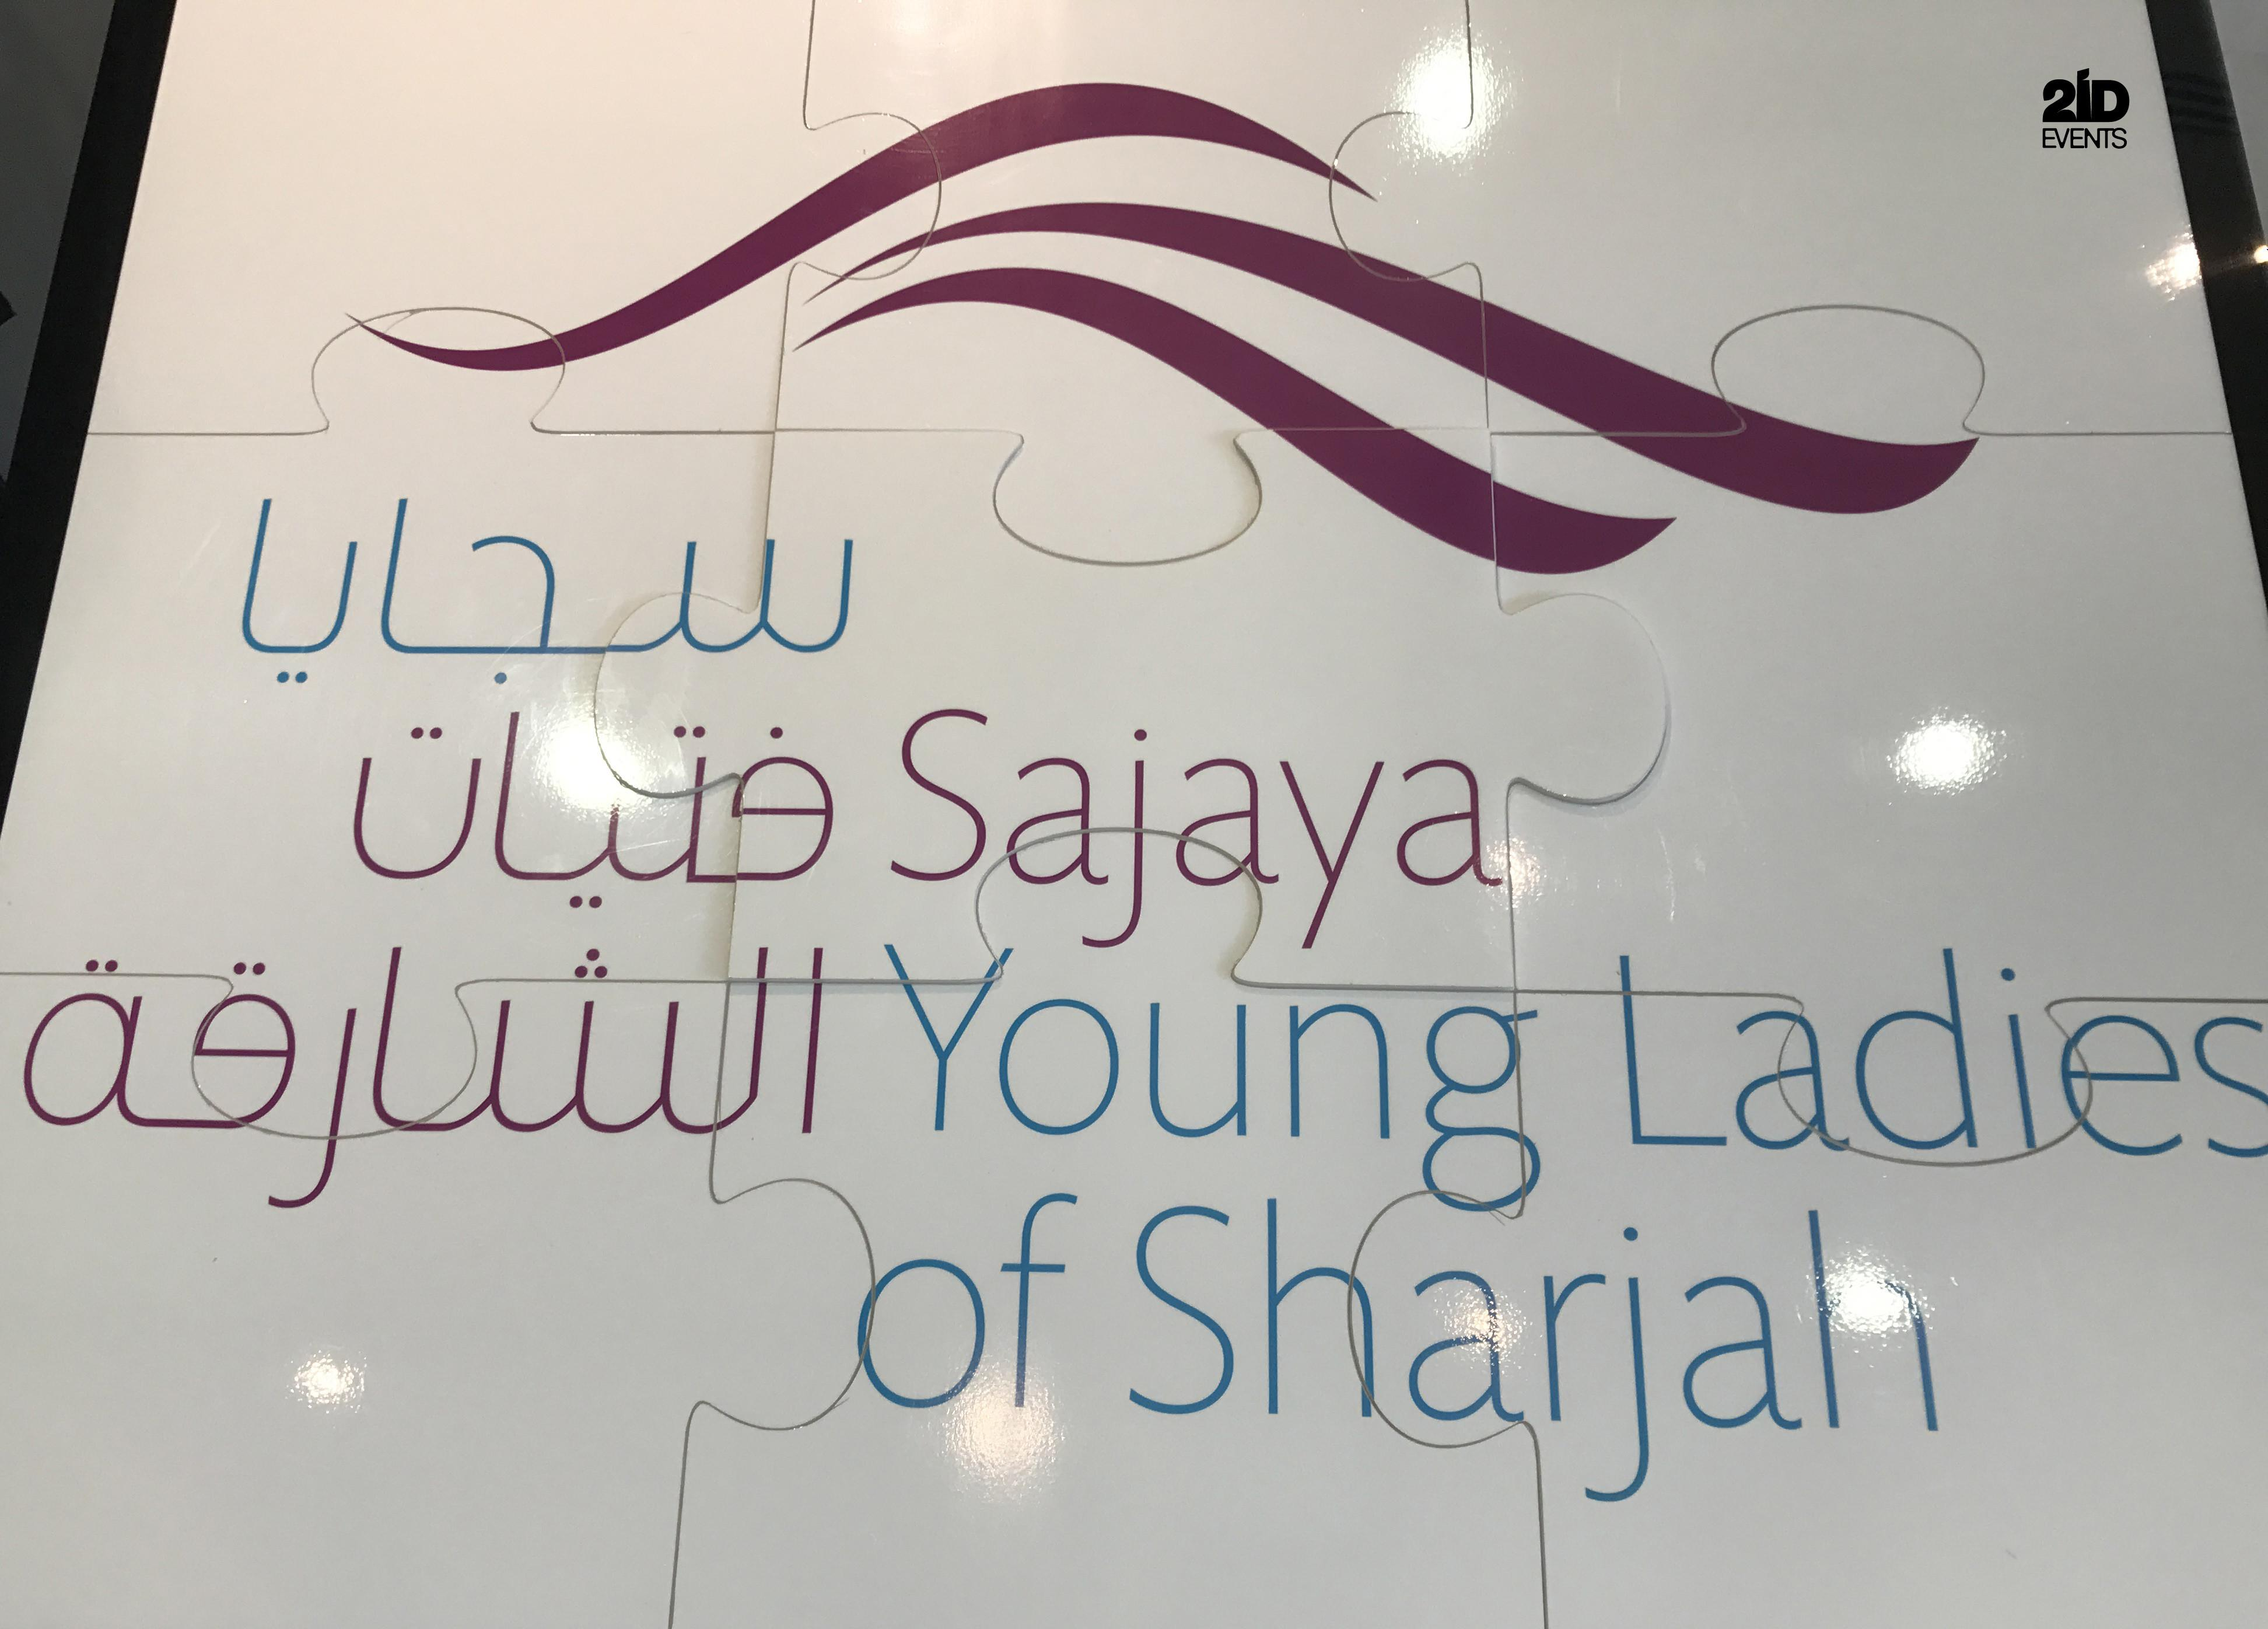 SAJAYA YOUNG LADIES OF SHARJAH CEREMONY